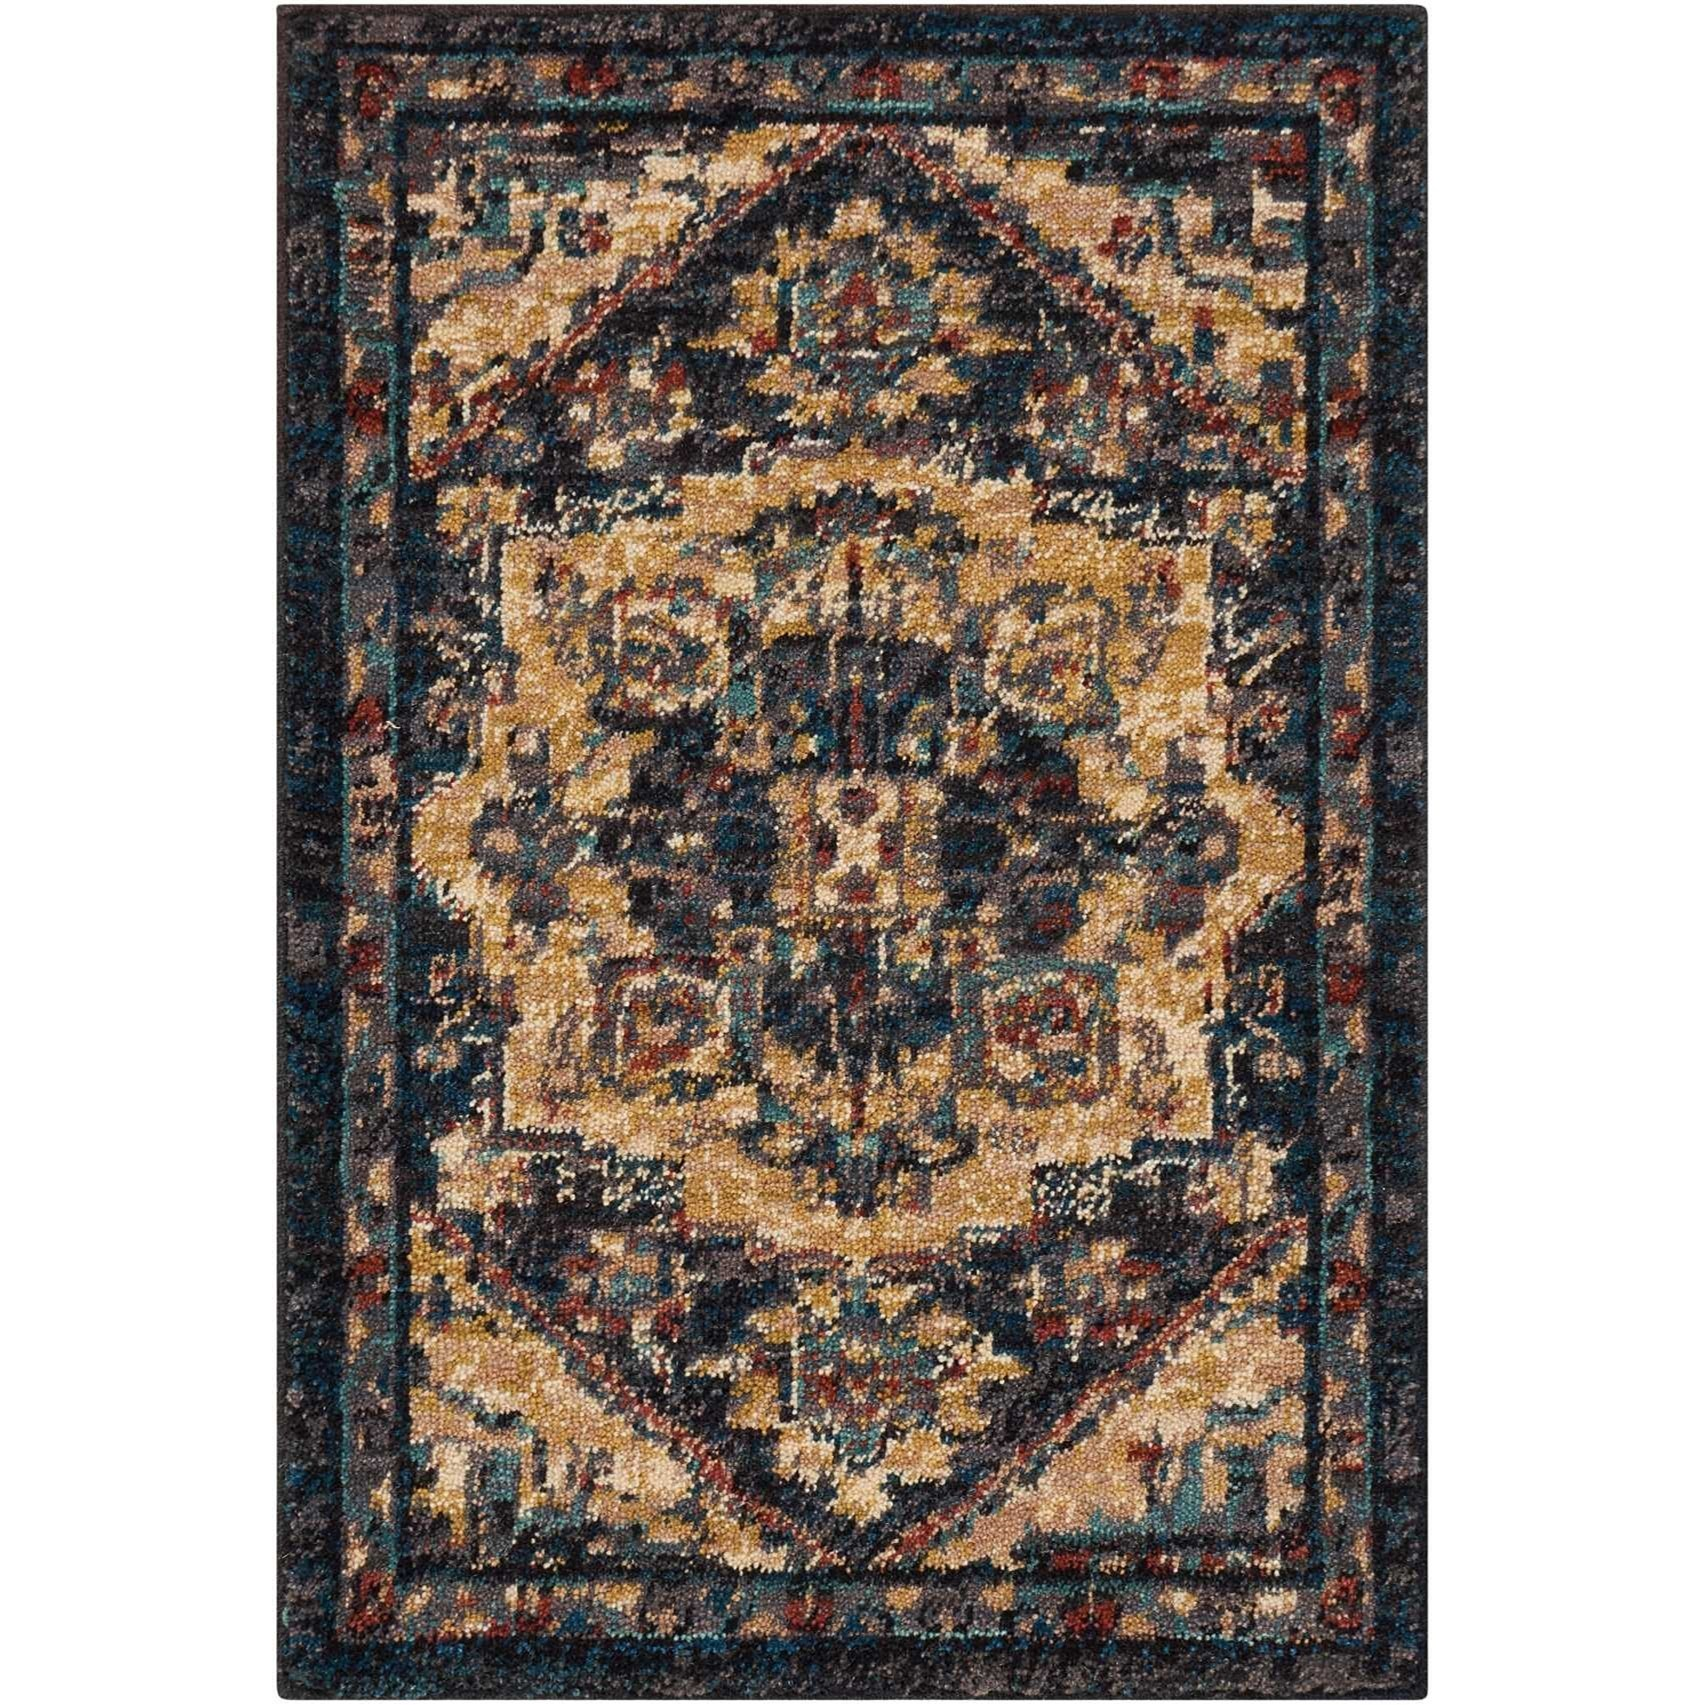 Nourison 2020 2' X 3' Midnight Rug by Nourison at Home Collections Furniture